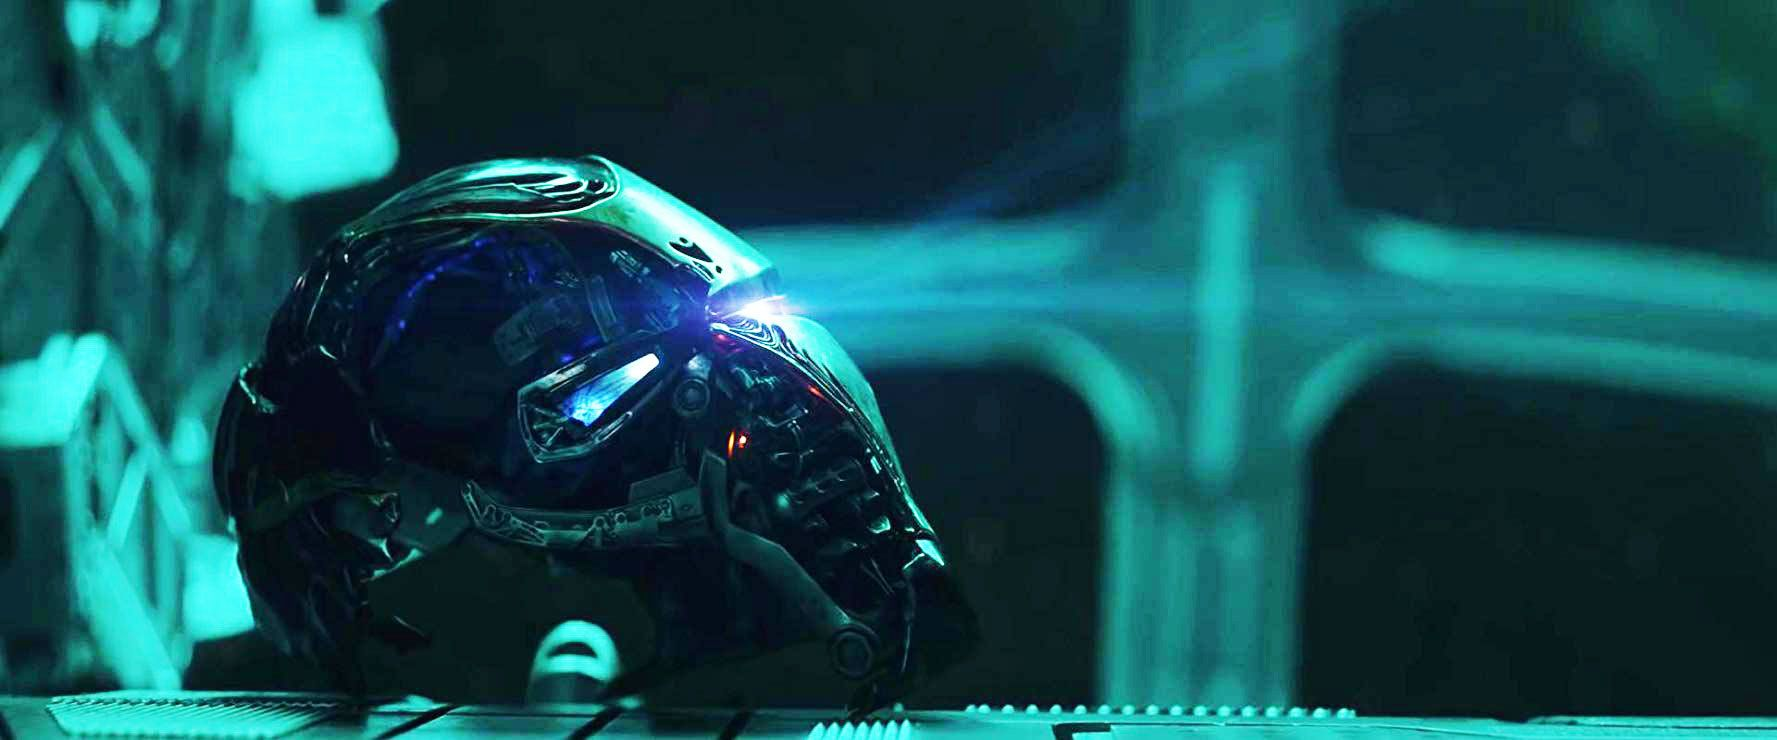 Avengers: Endgame - Release Date, Cast, Trailer, Rumors, News